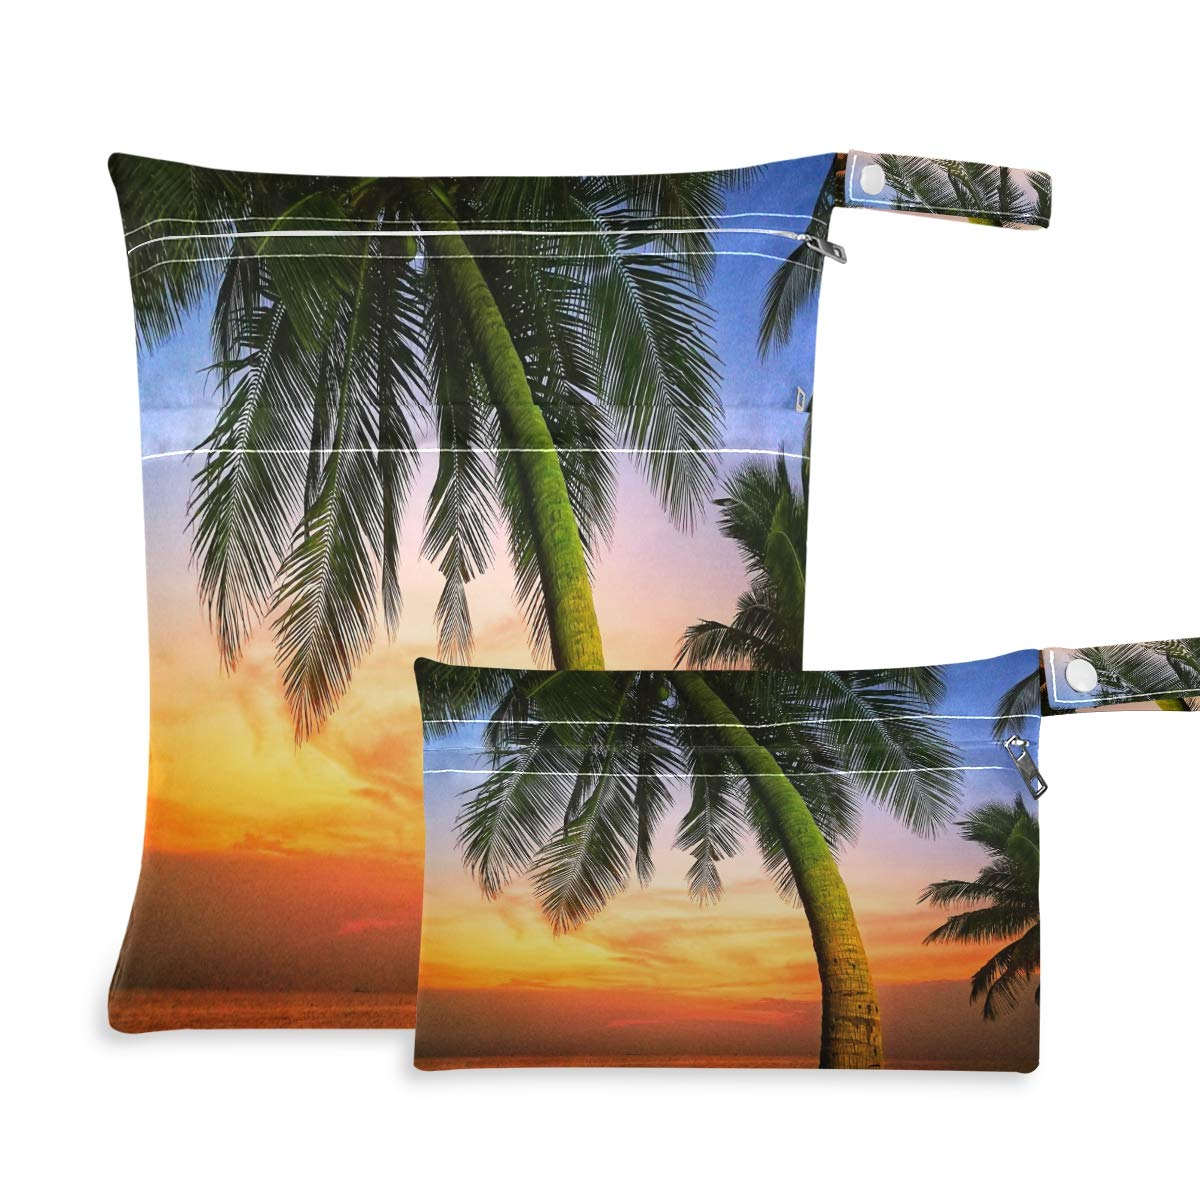 Ombra Waterproof Wet Dry Bag 2 Pack Tropical Sea Beach Palm Tree Cloth Diaper Bag Organizer Pouch Set with Zipper Pocket Washable Wet Bag for Travel Hiking Swimsuit